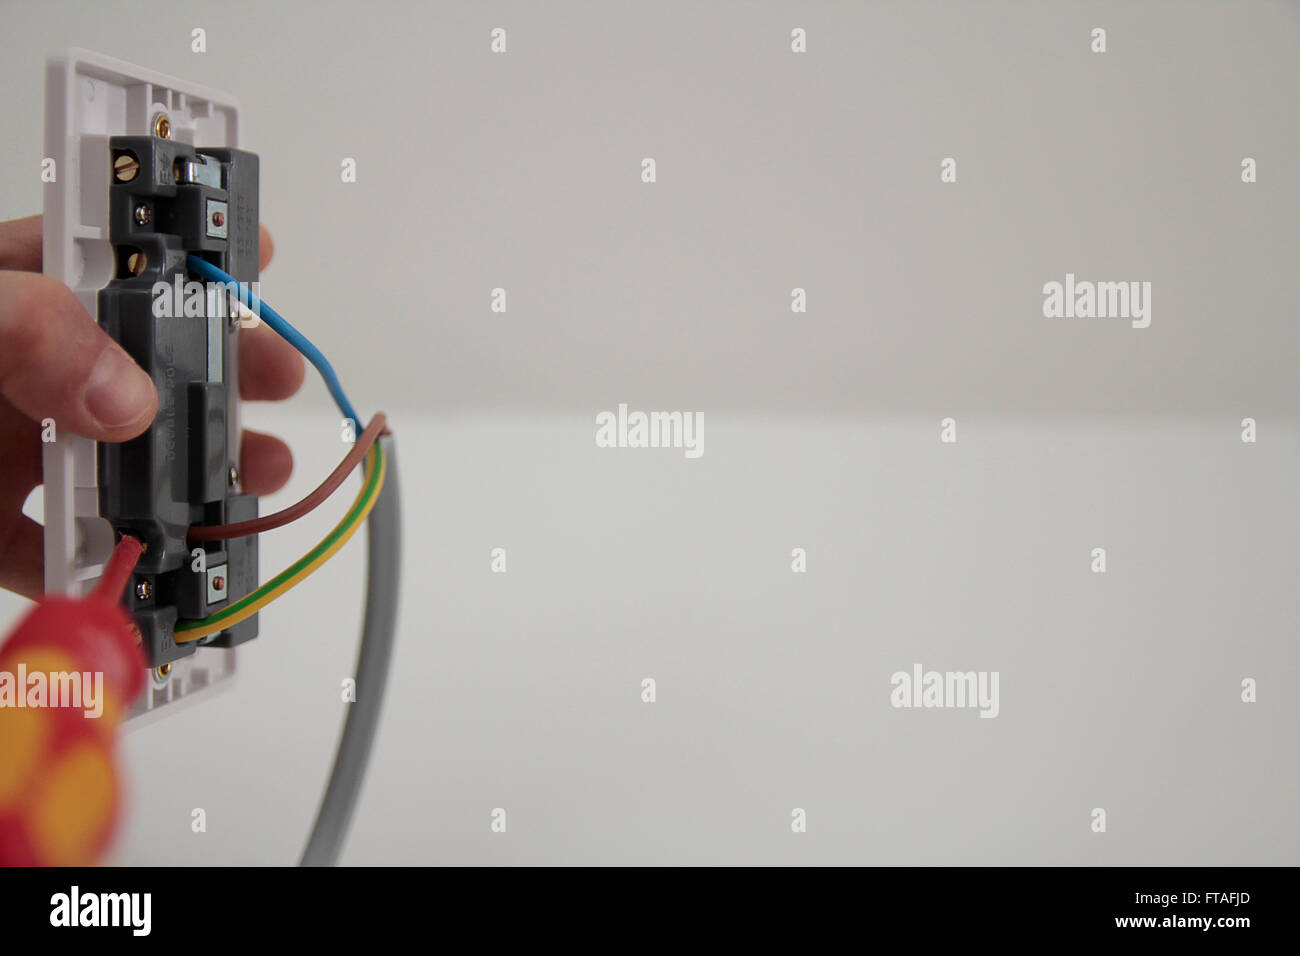 Socket And Wires Stockfotos & Socket And Wires Bilder - Alamy